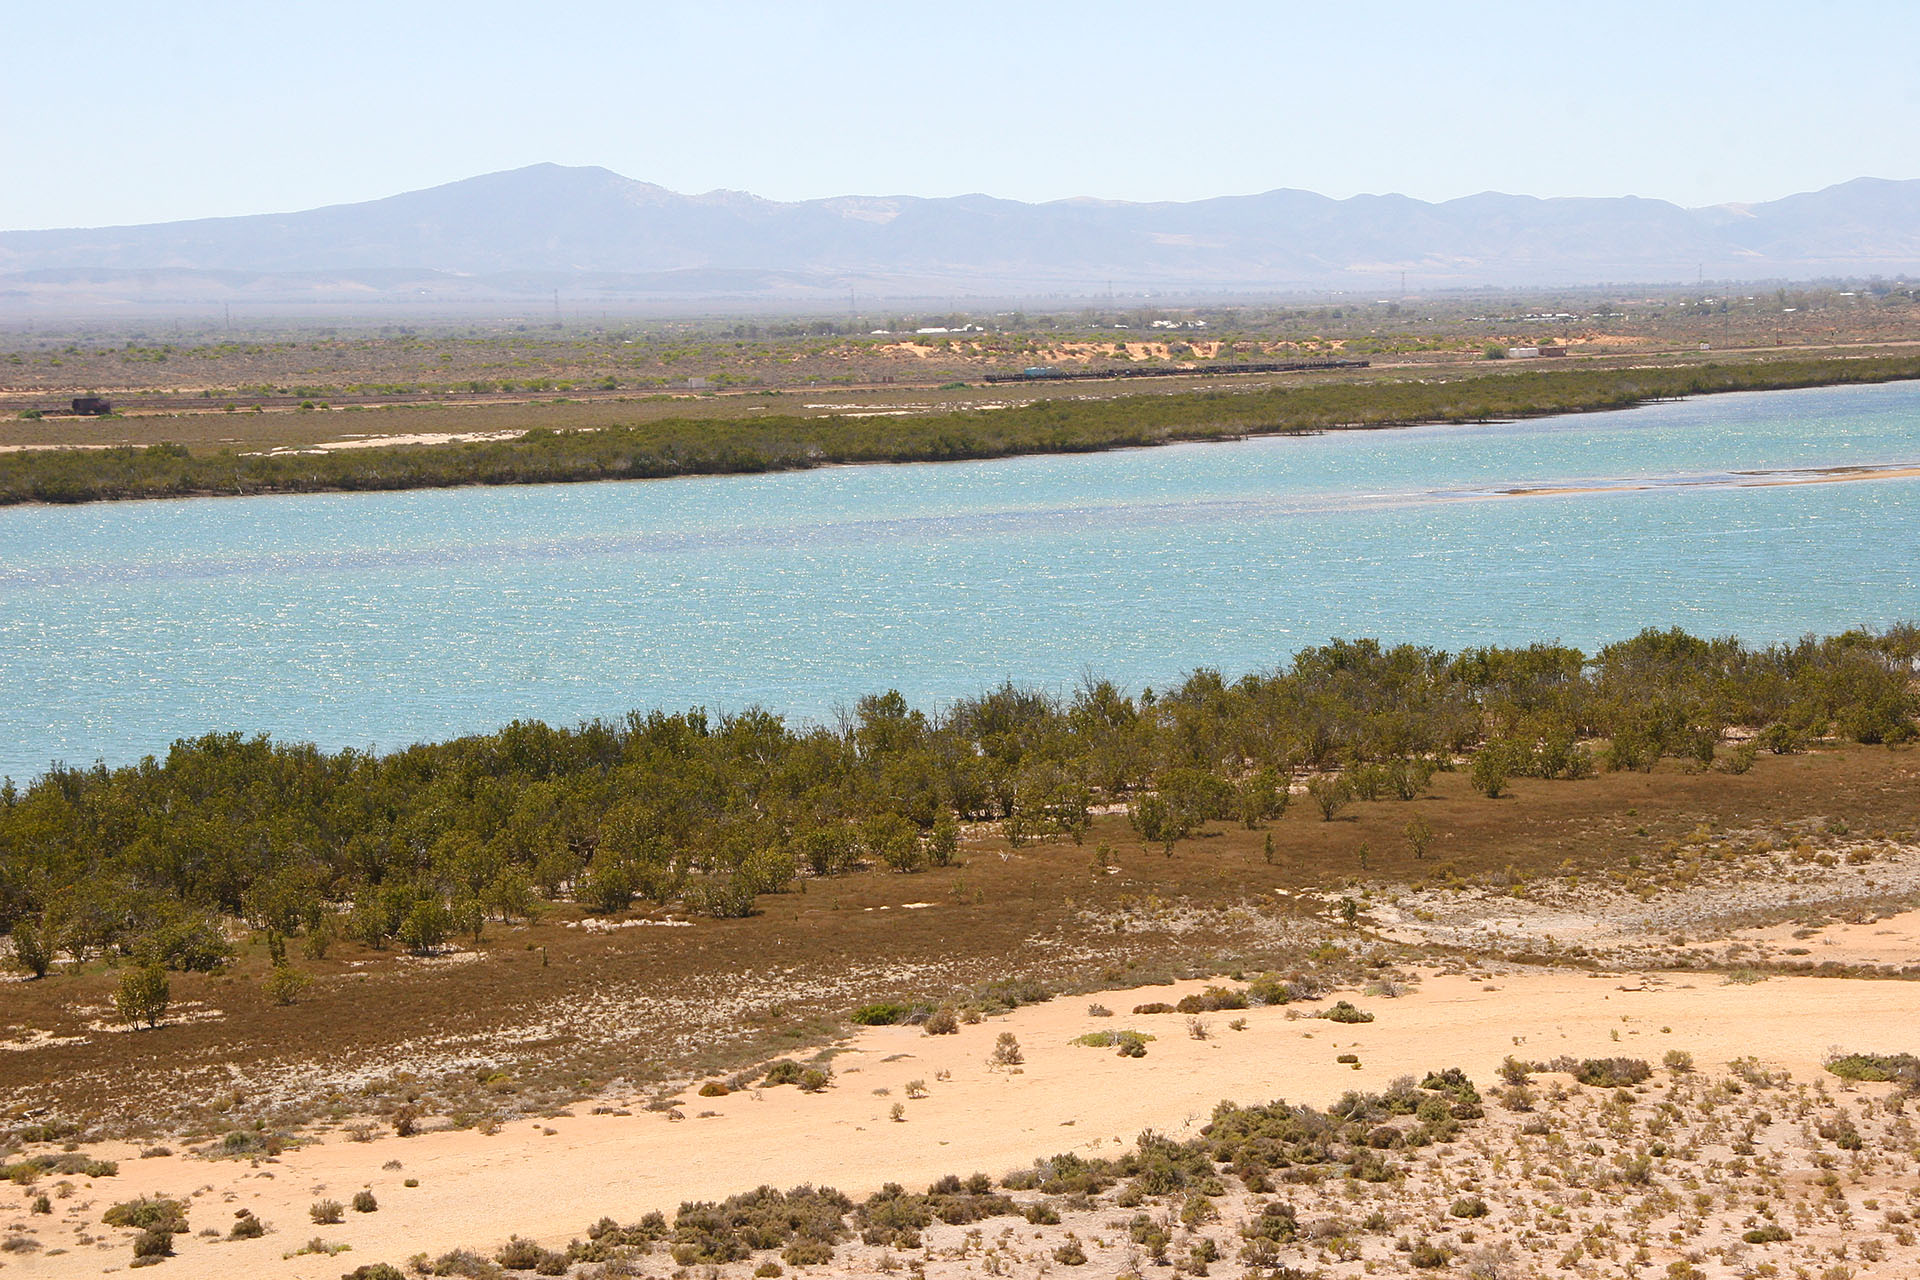 Mangroves in the front and Flinders Ranges in the back.